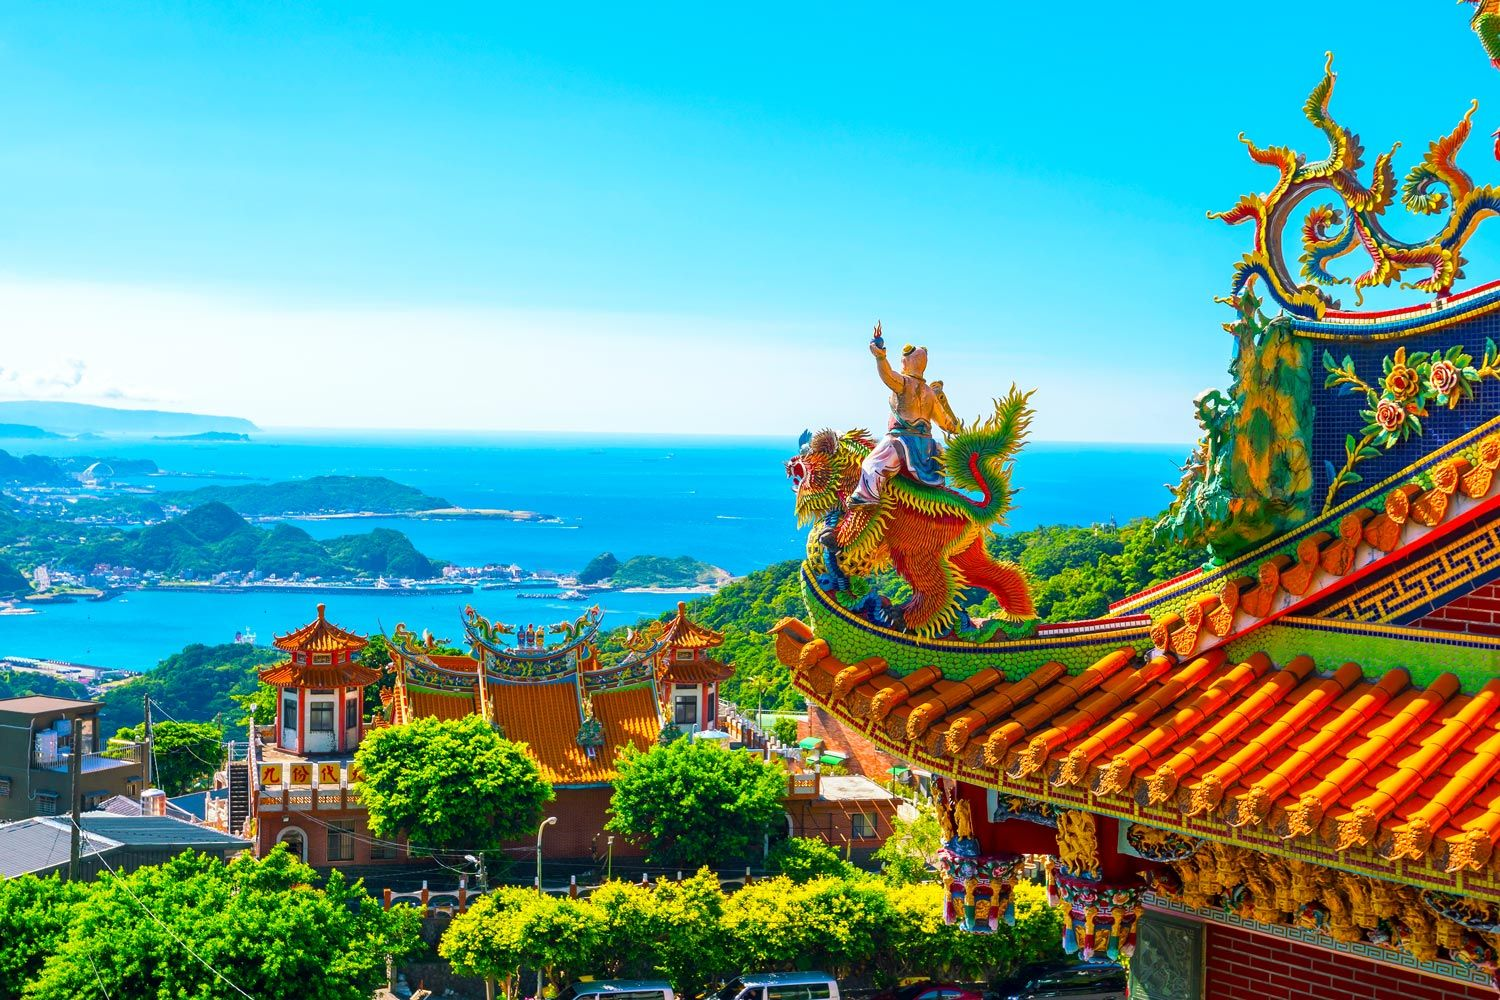 Image for Fully inclusive paid teaching internship in Taiwan. Perfect for first time English teachers, internationally accredited TEFL training included.